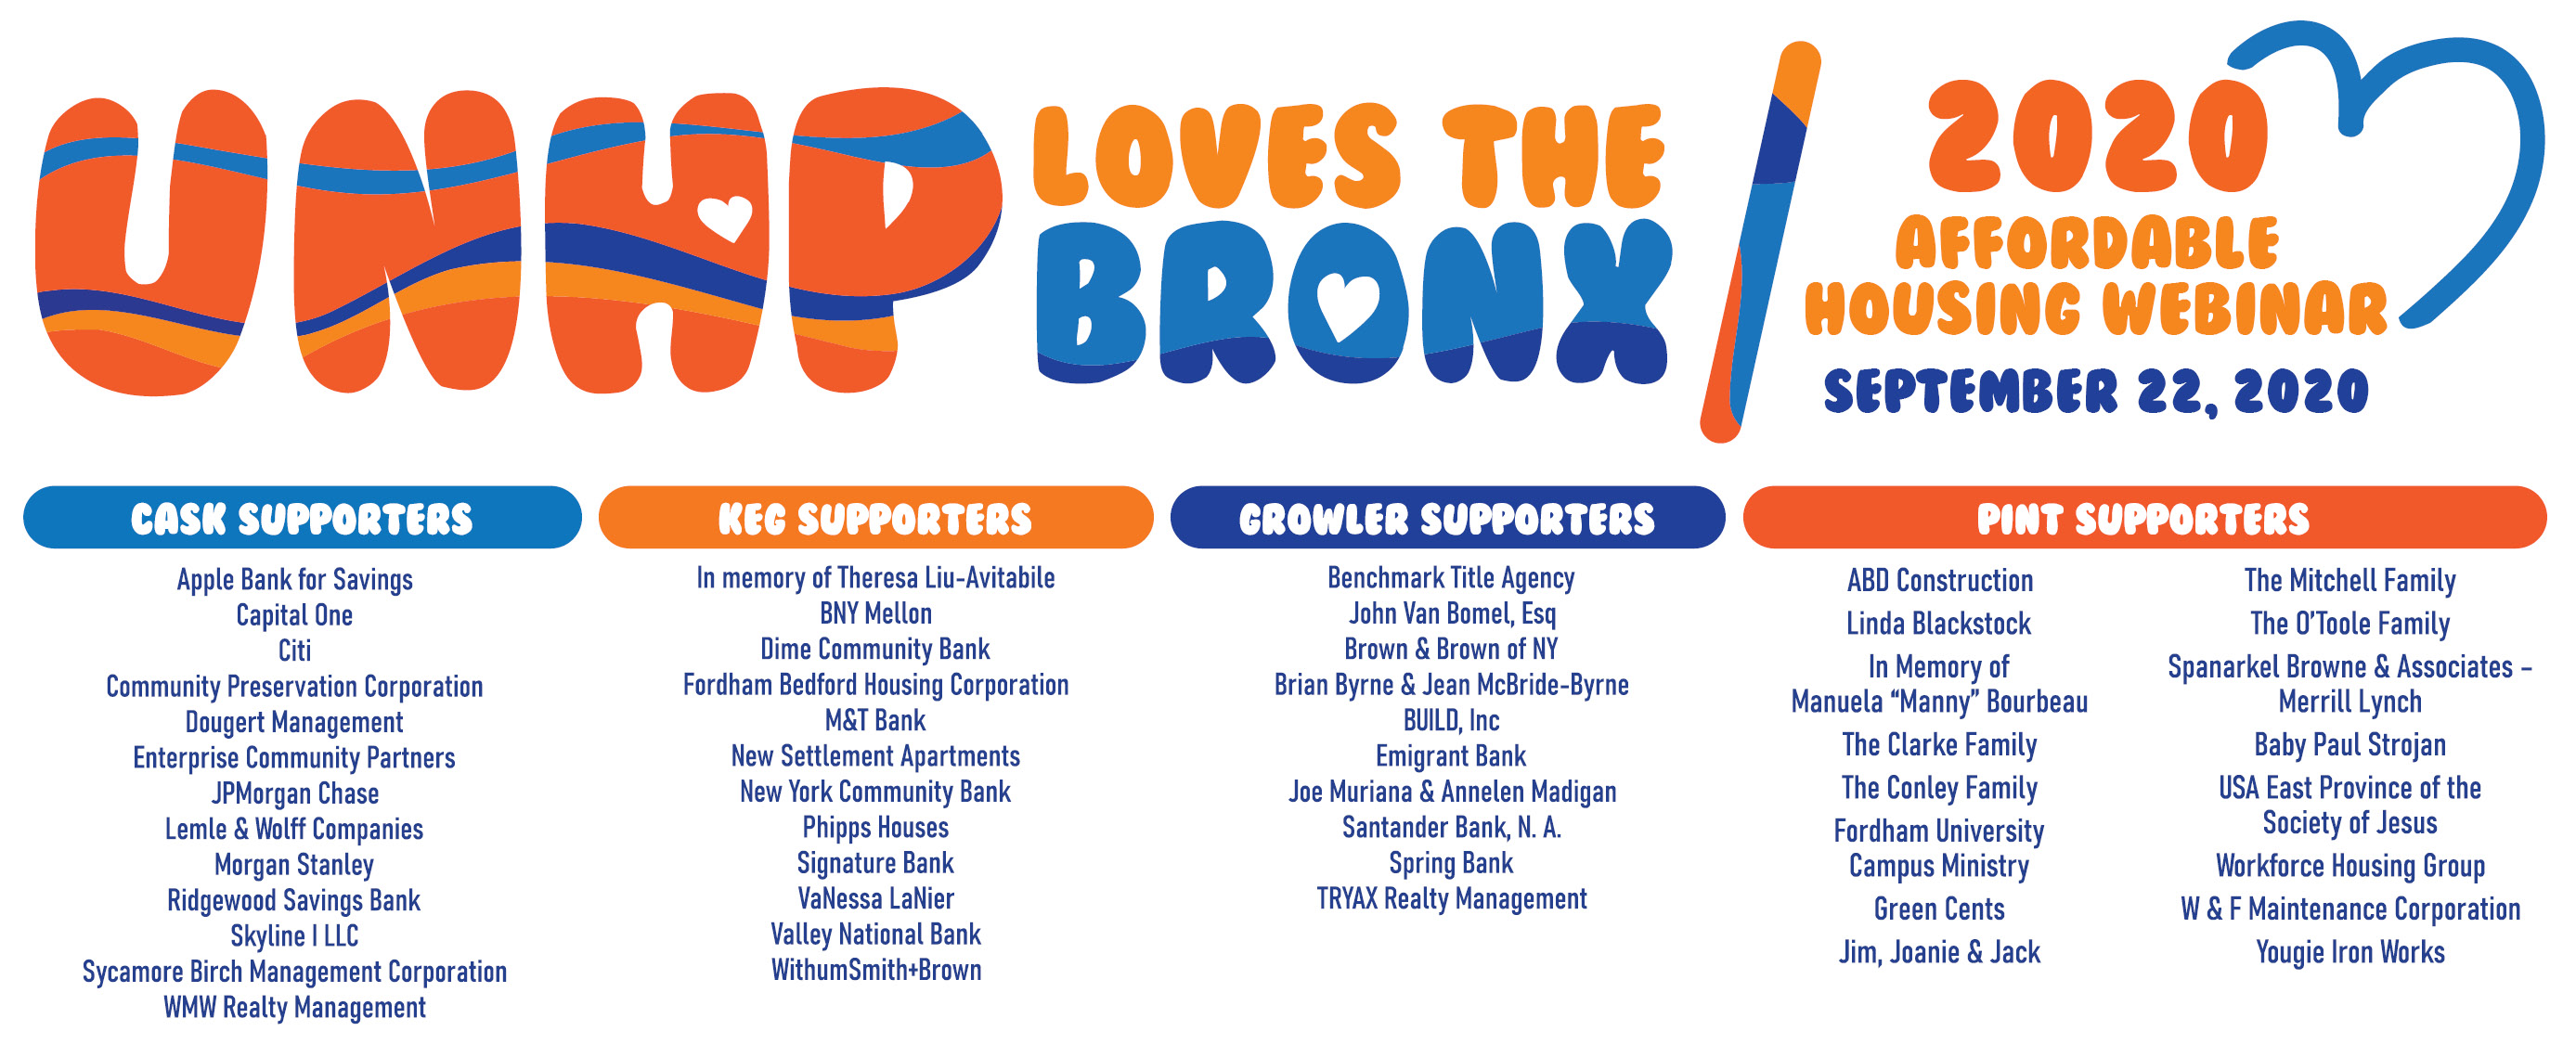 A BIG thank you to our generous sponsor!. Your support will help UNHP contiue with our work to create and preserve affordable housing and bring needed resources to our Bronx community. See the detailed larger print listing further down in this post.